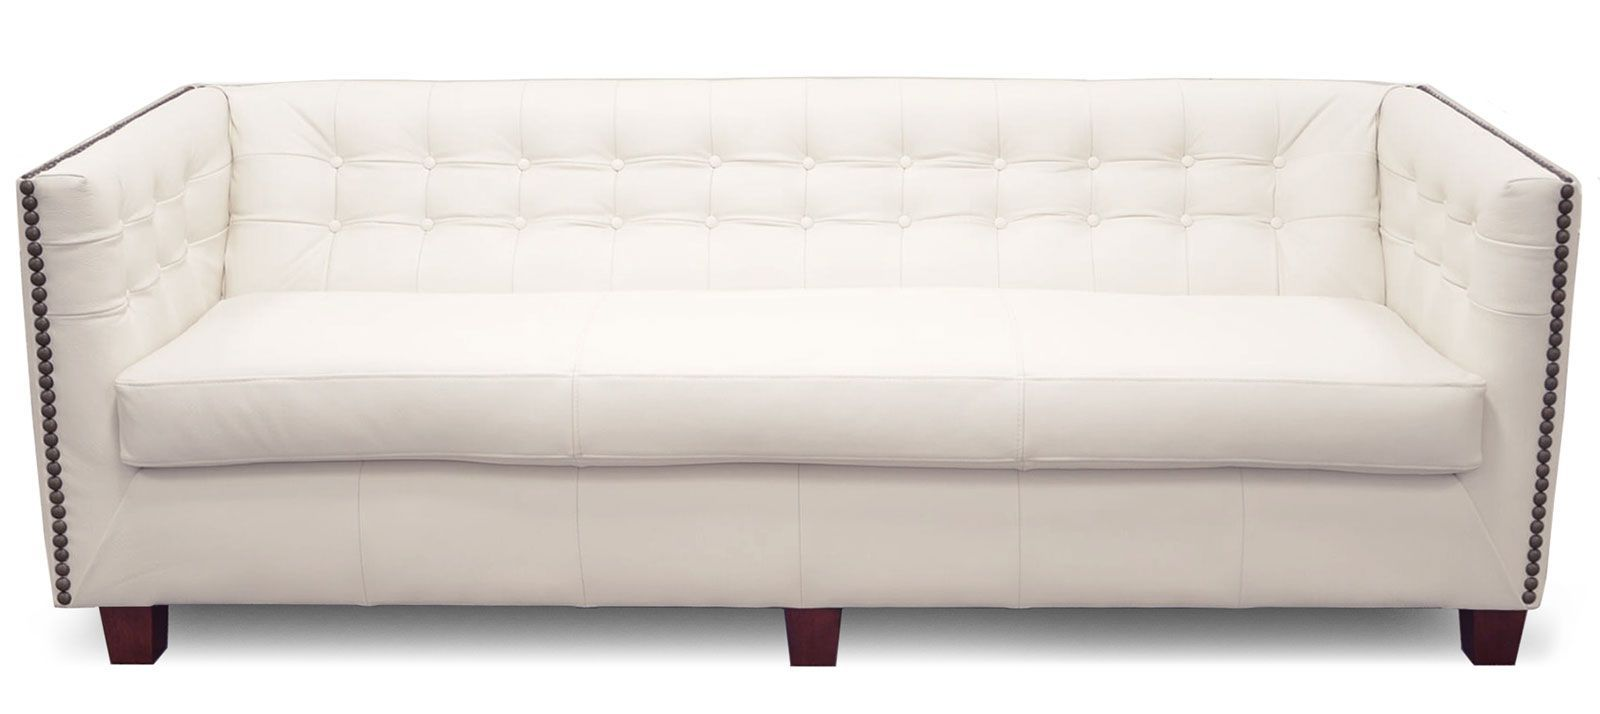 Leather Sofas U2039u2039 Styles U2039u2039 The Leather Sofa Company